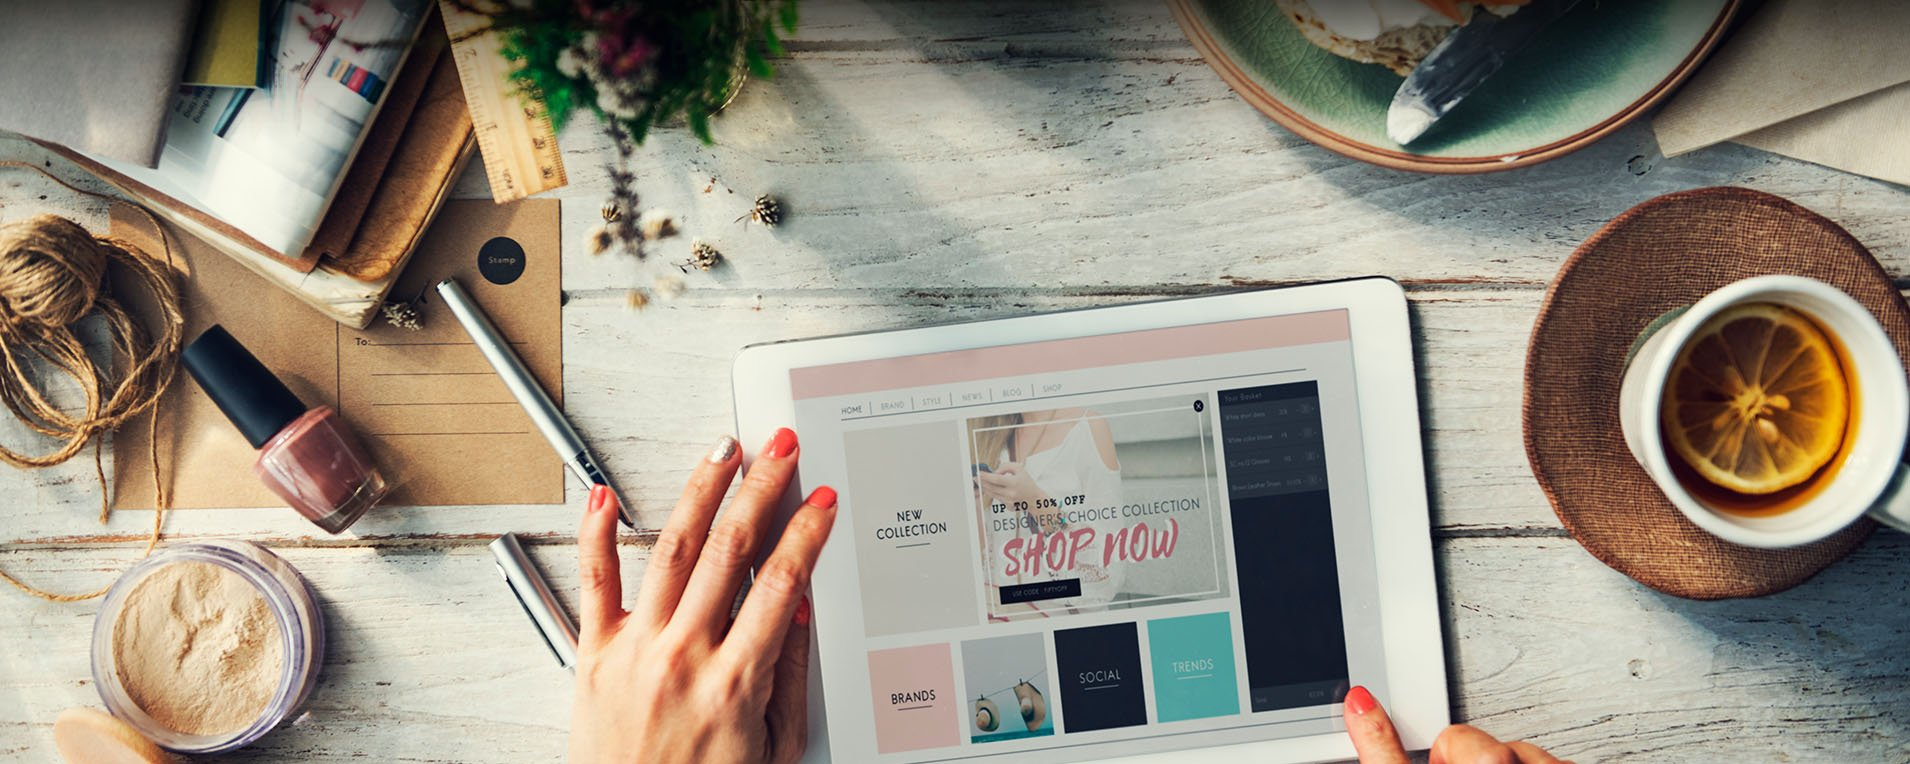 The Marketer's Guide to Building an Ecommerce Strategy